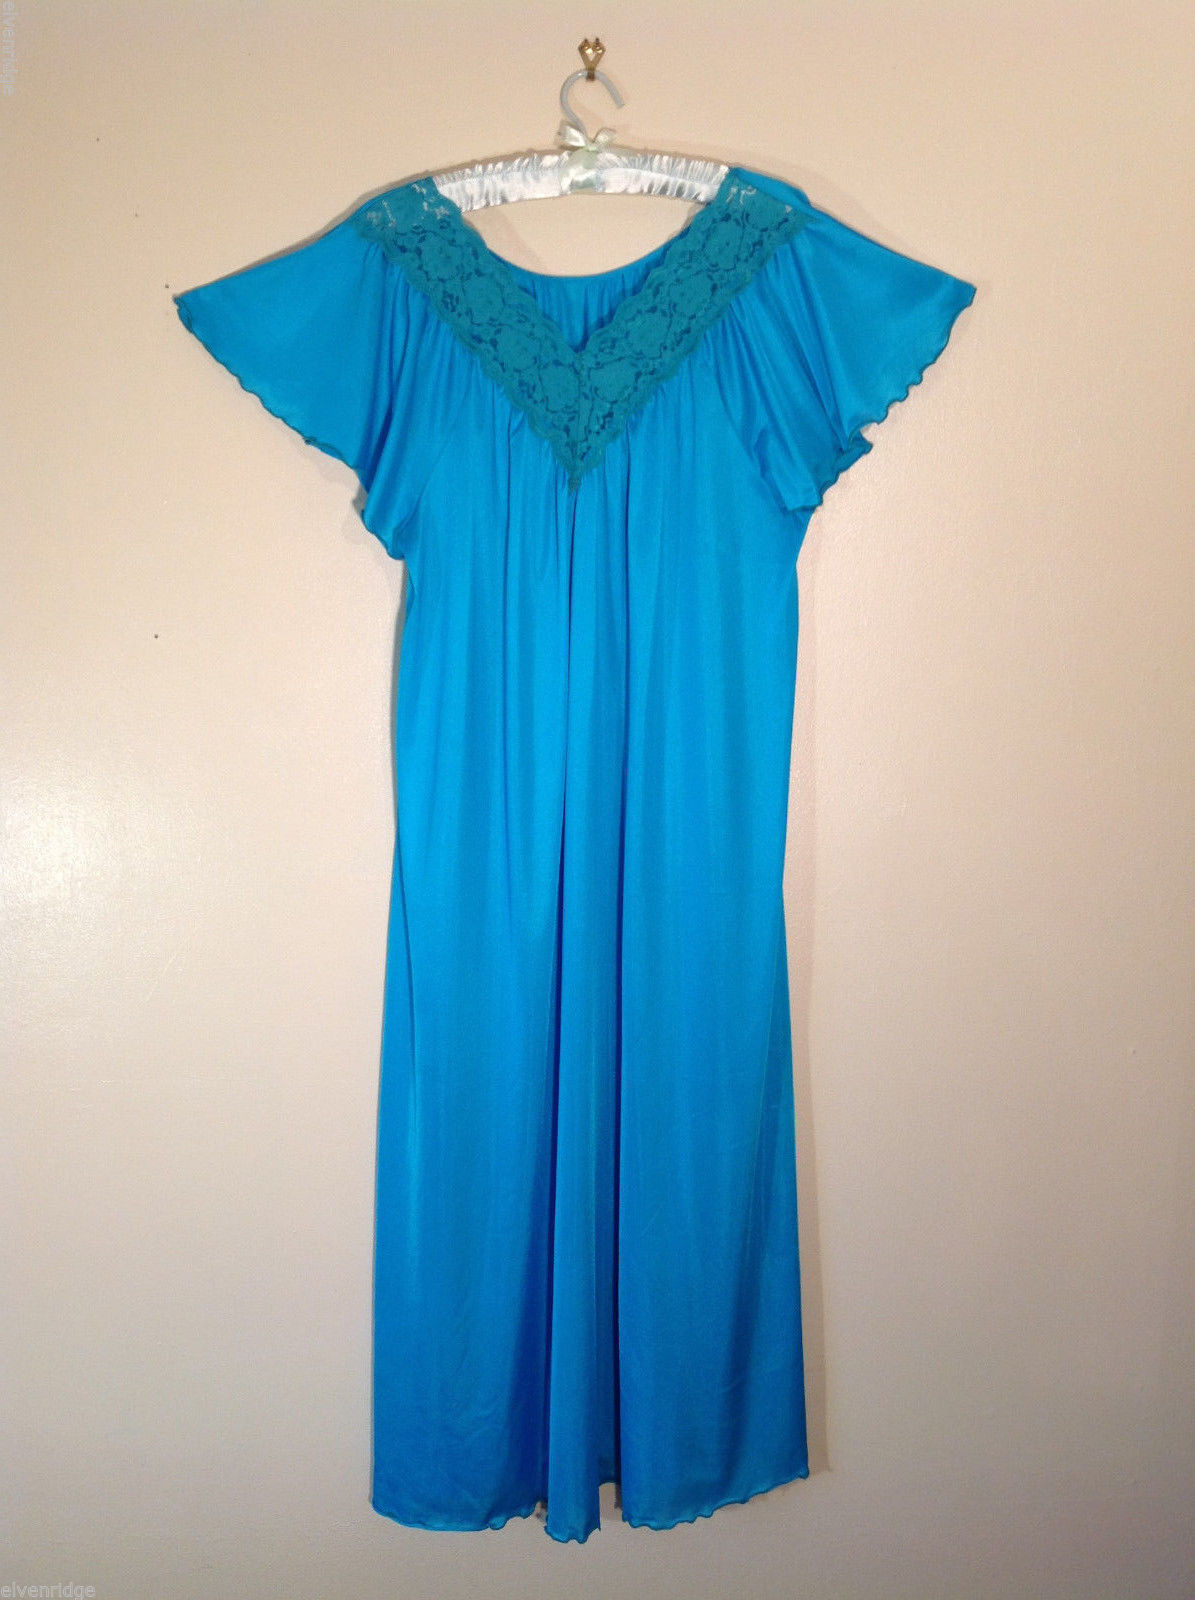 No Tag Women's Teal Blue Nylon Maxi Lingerie Nightgown w/ Cap Sleeves, Lace Trim